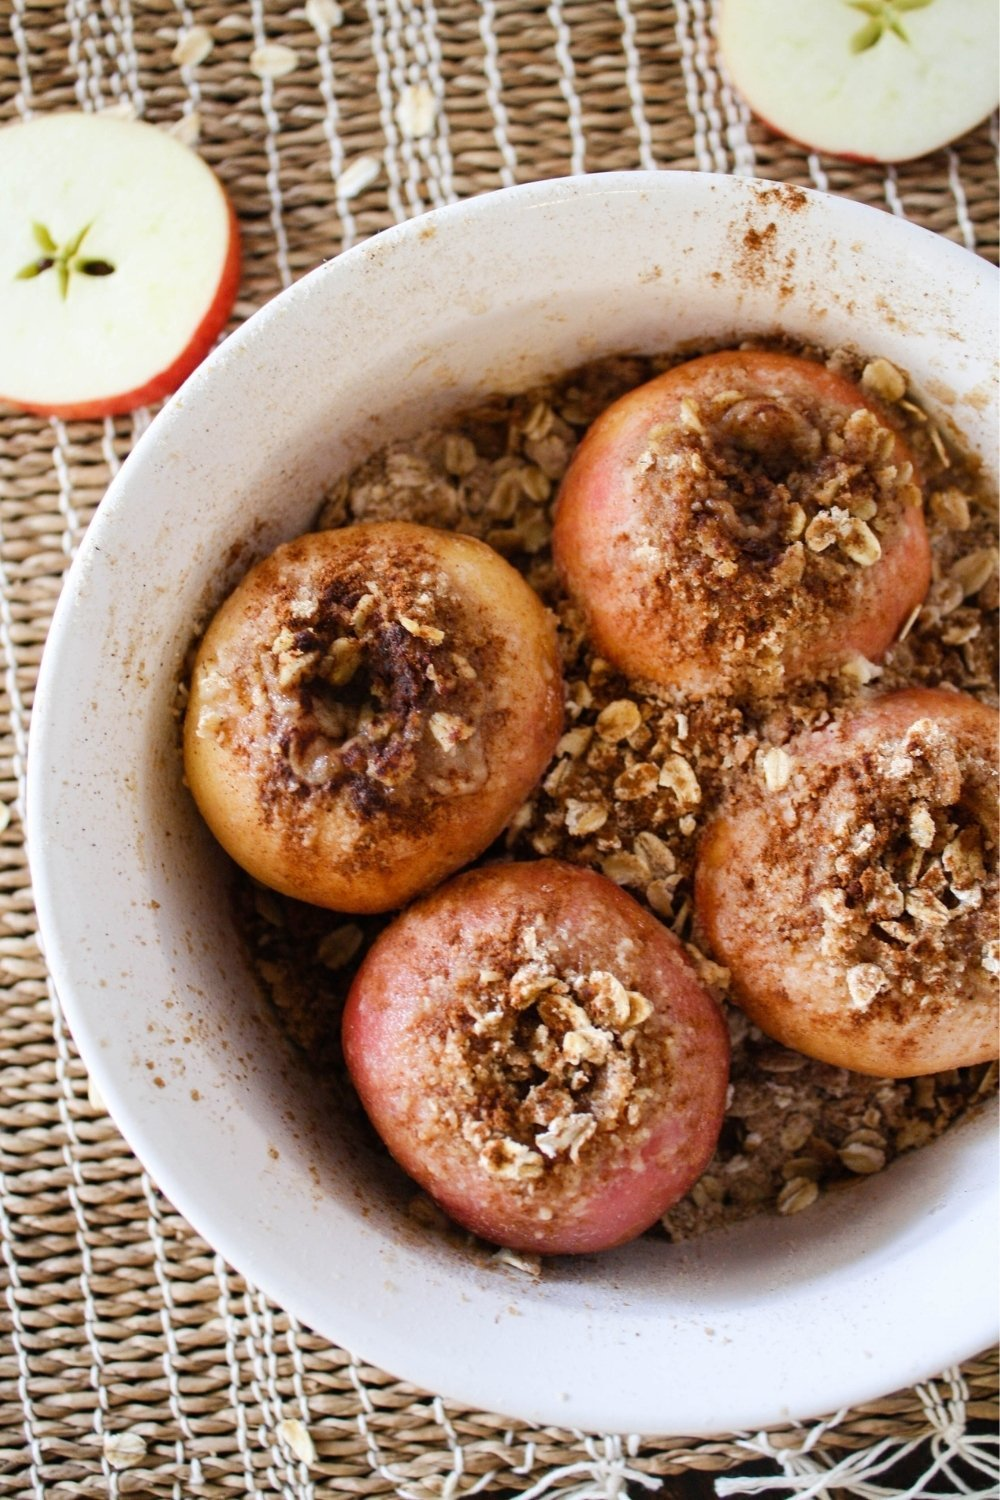 This Fall, make Baked Apples in your Instant Pot!